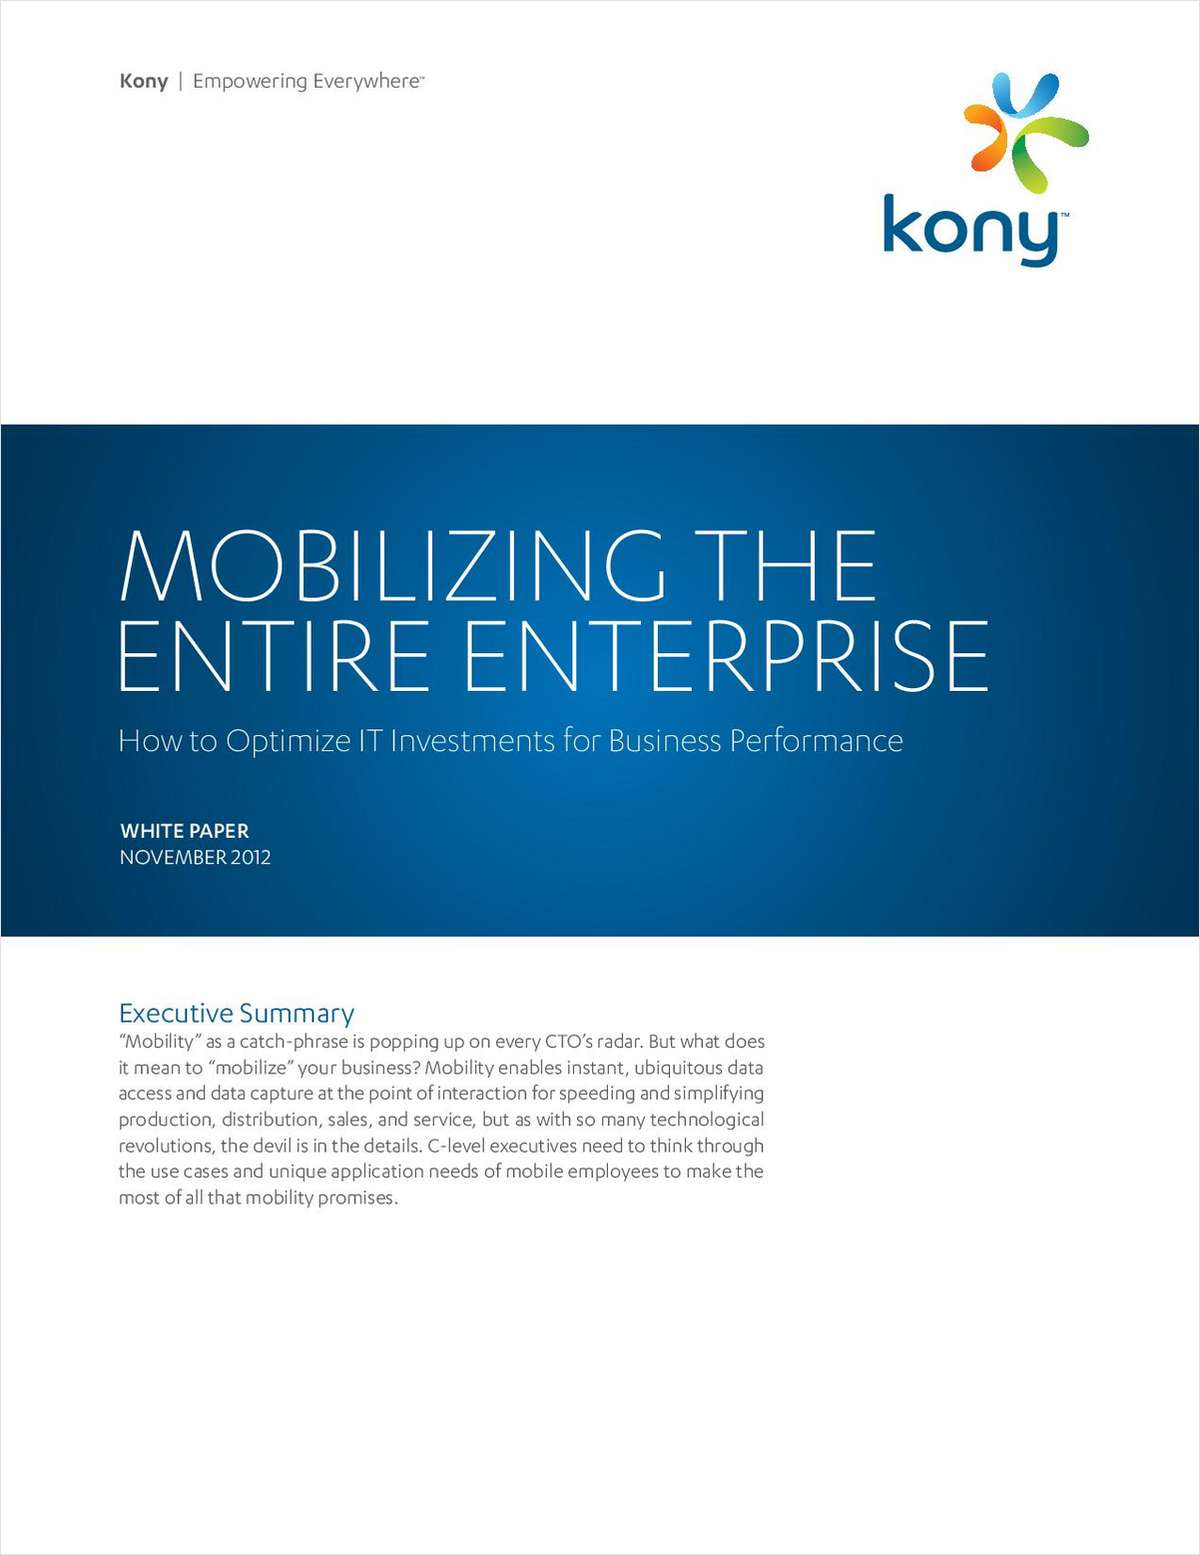 How IT Professionals Mobilize the Entire Enterprise